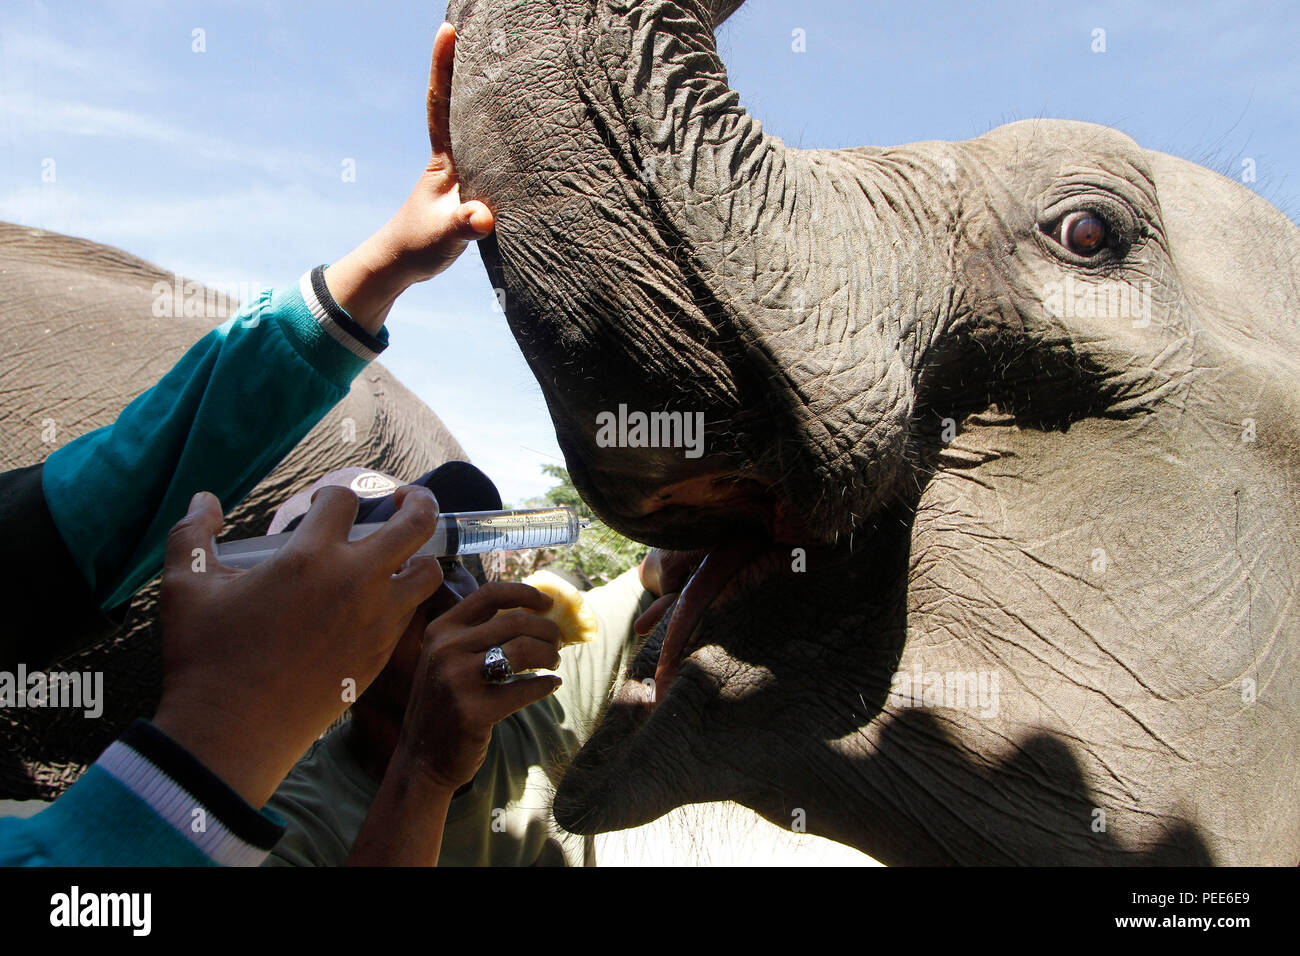 A Veterinarian injects anthelmintic into elephant's mouth at the Conservation in Minas, Siak Regency, Riau Province, Indonesia. The medical examinat - Stock Image